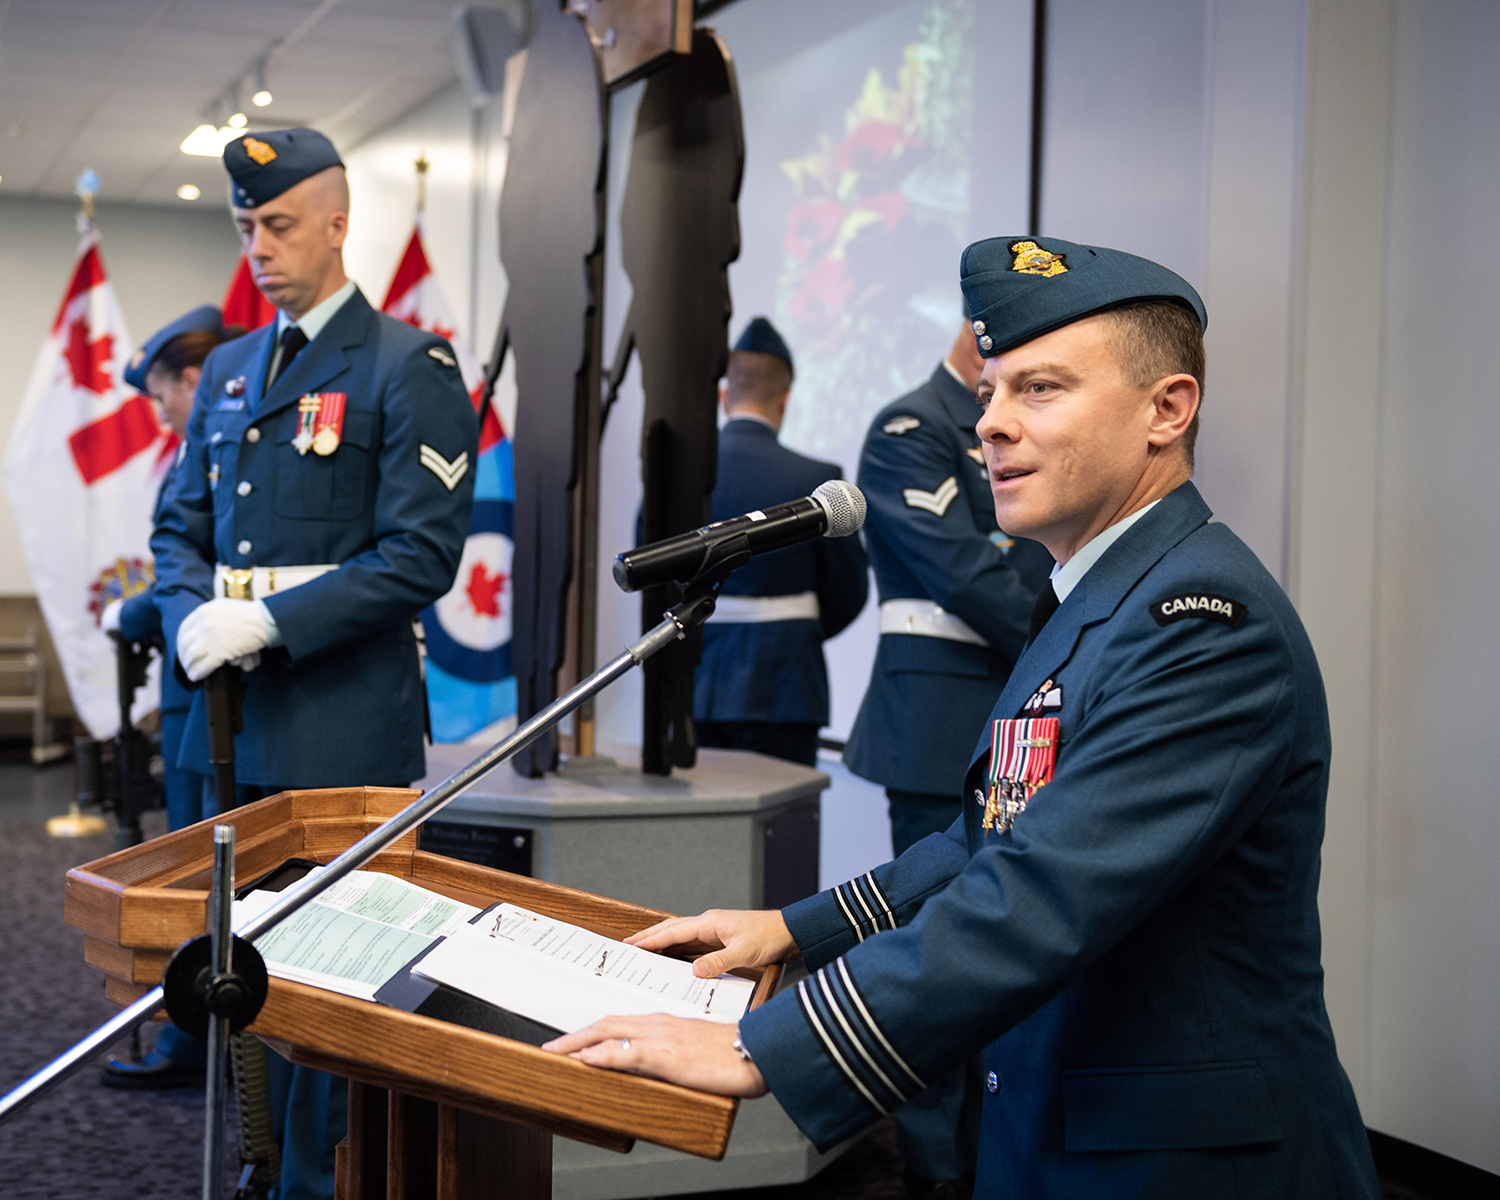 On September 15, 2019, Lieutenant-Colonel Jody Edmonstone, commanding officer of 425 Tactical Fighter Squadron, 3 Wing Bagotville, Québec, addresses the attendees of the ceremony held in remembrance of the Battle of Britain in Bagotville, Québec. PHOTO: Corporal Dominic Duchesne-Beaulieu, BN06-2019-0487-010